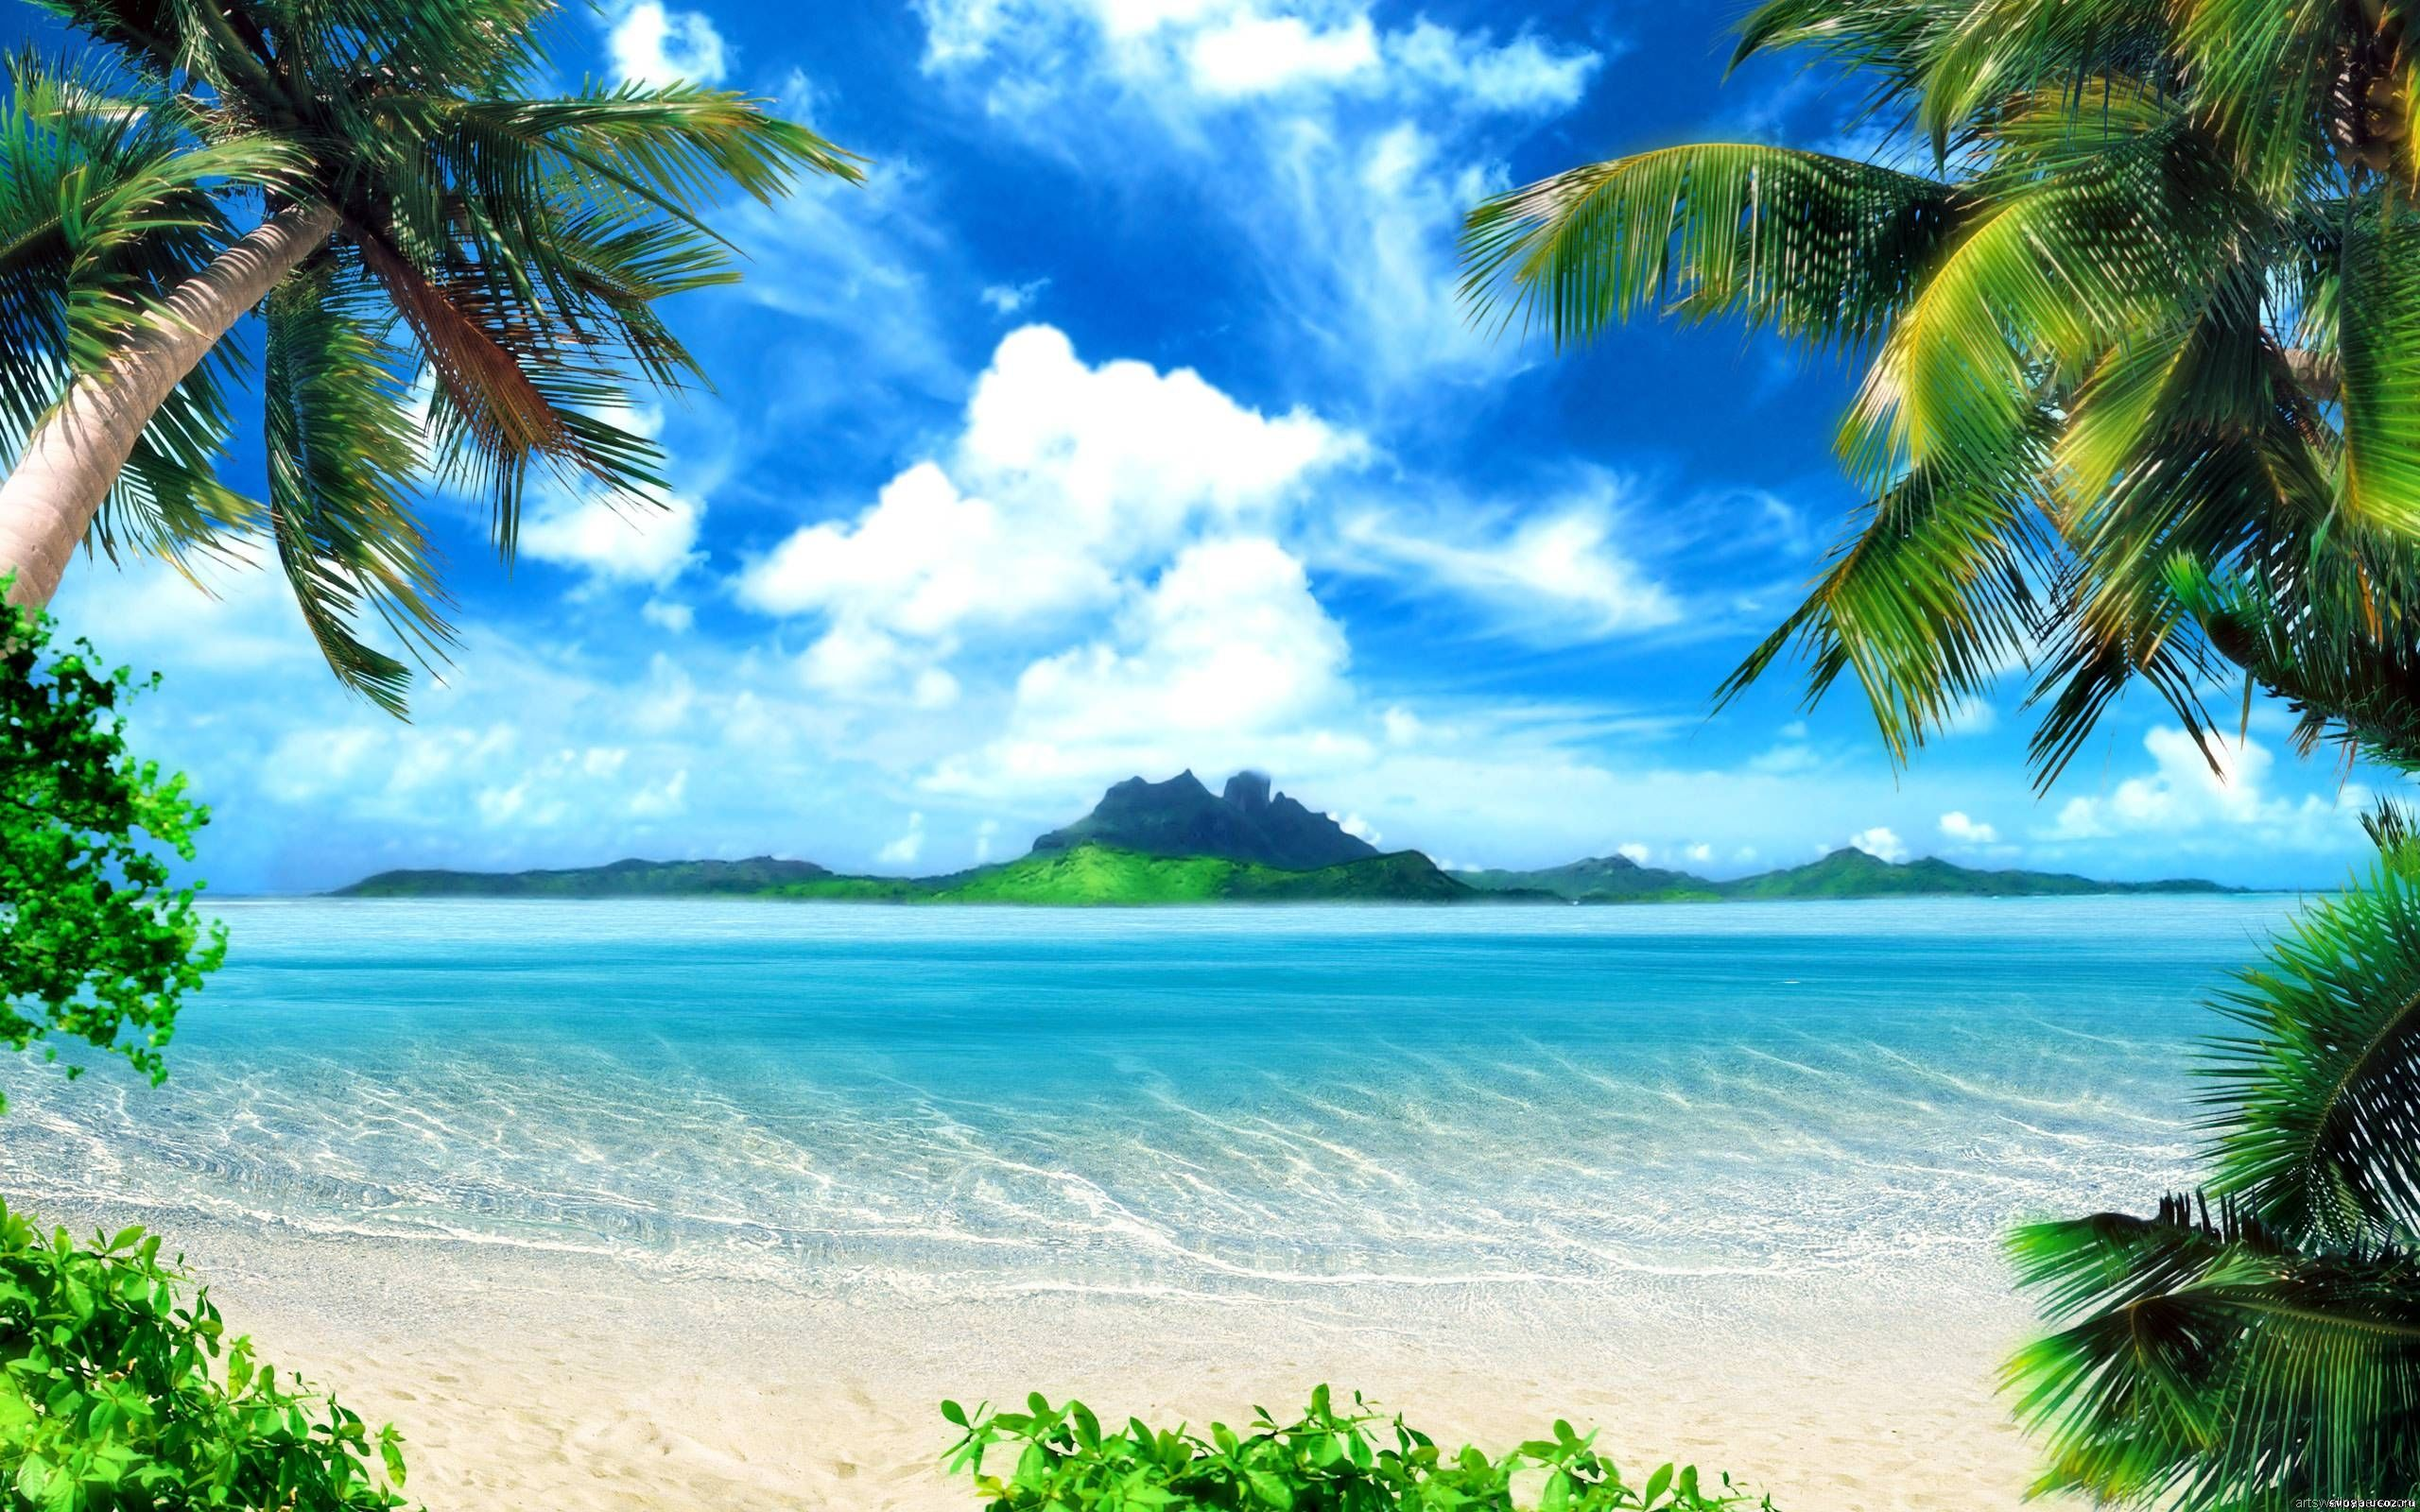 Seas Oceans Wallpaper 54 Jpg 2560 1600 Beach Backdrop Beach Background Beach Wallpaper